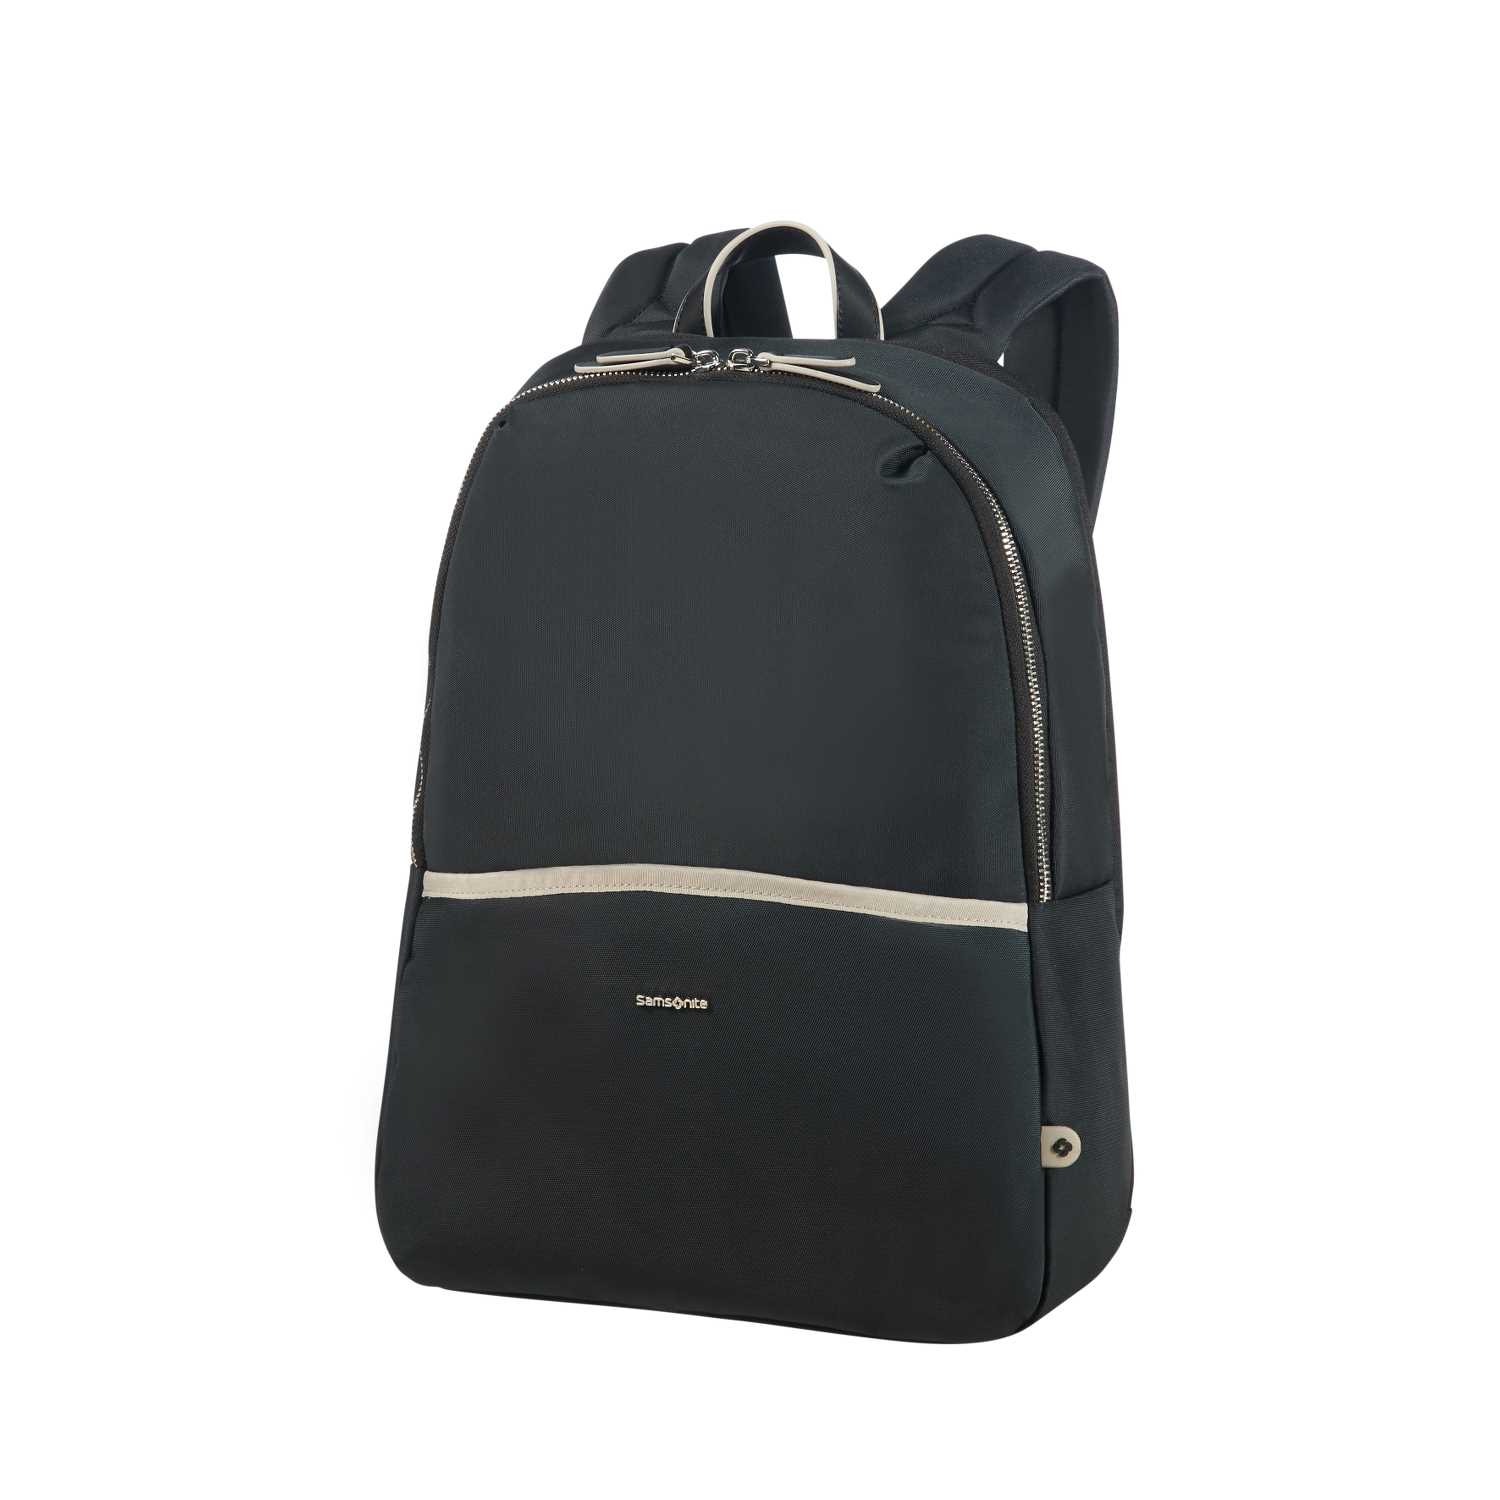 "BACK PACK SAMSONITE Nefti 14,1"" 88201"